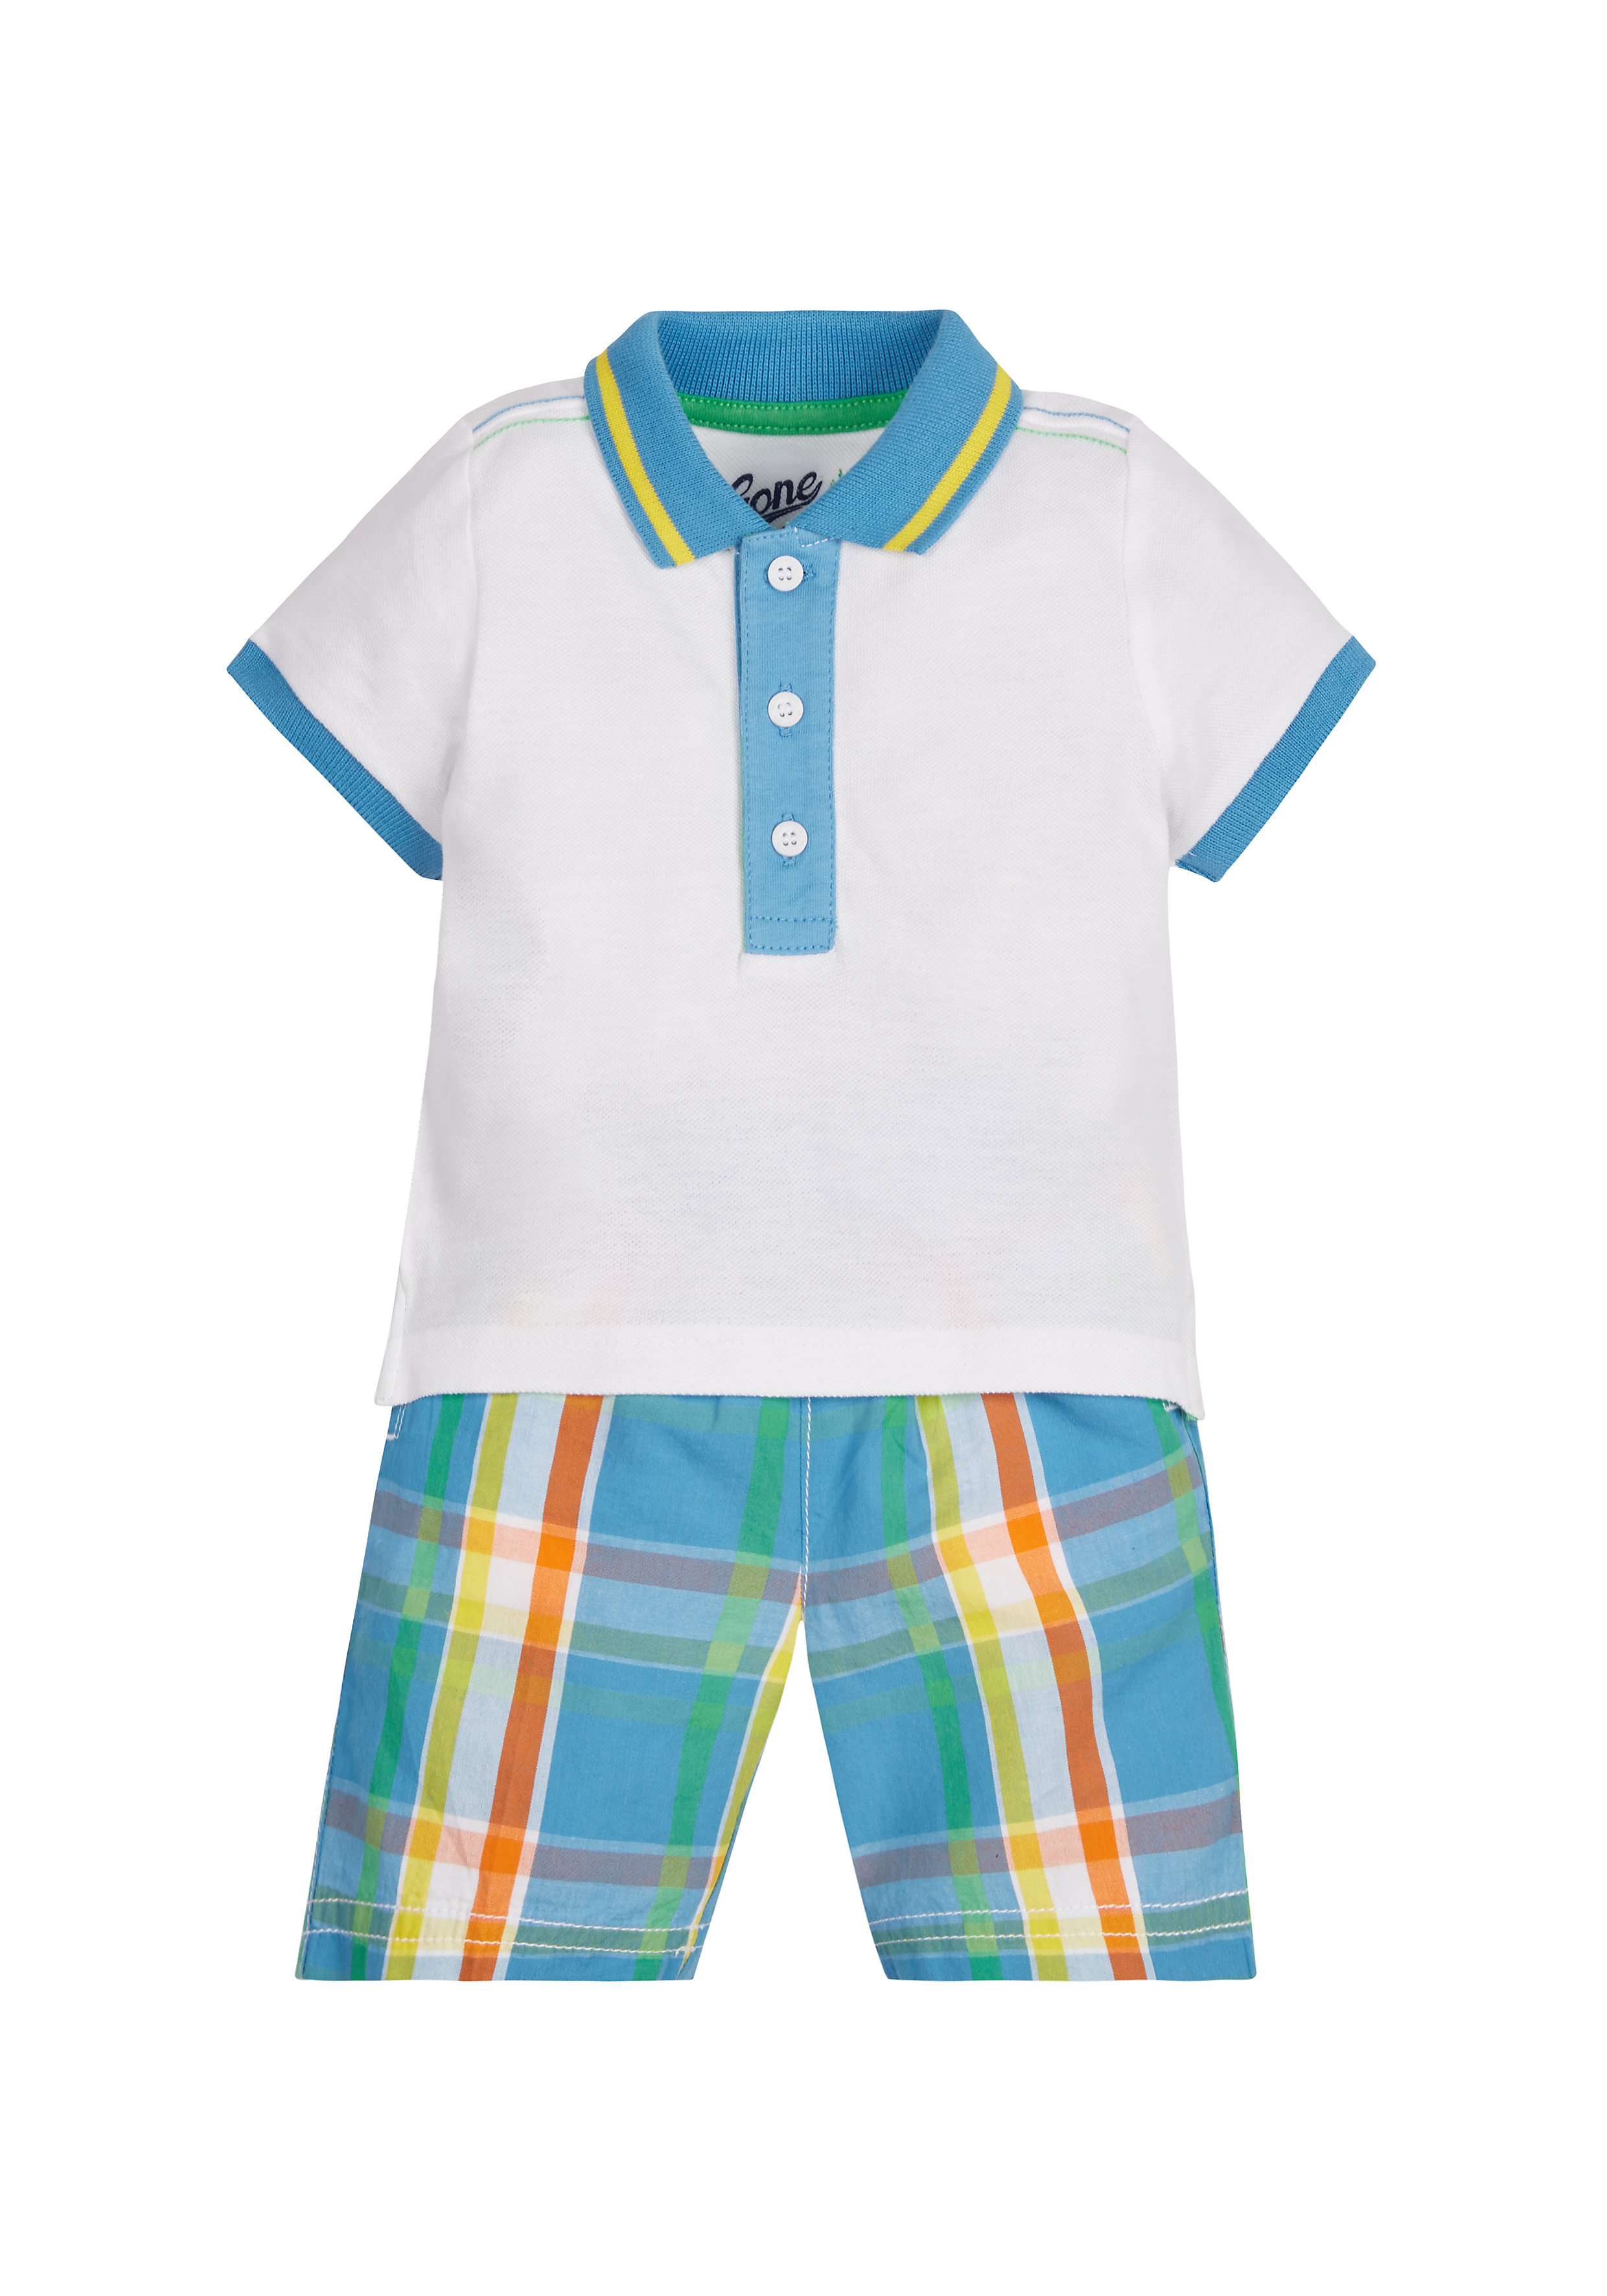 Mothercare | Boys Half Sleeves Polo T-Shirt And Shorts Set - White Blue